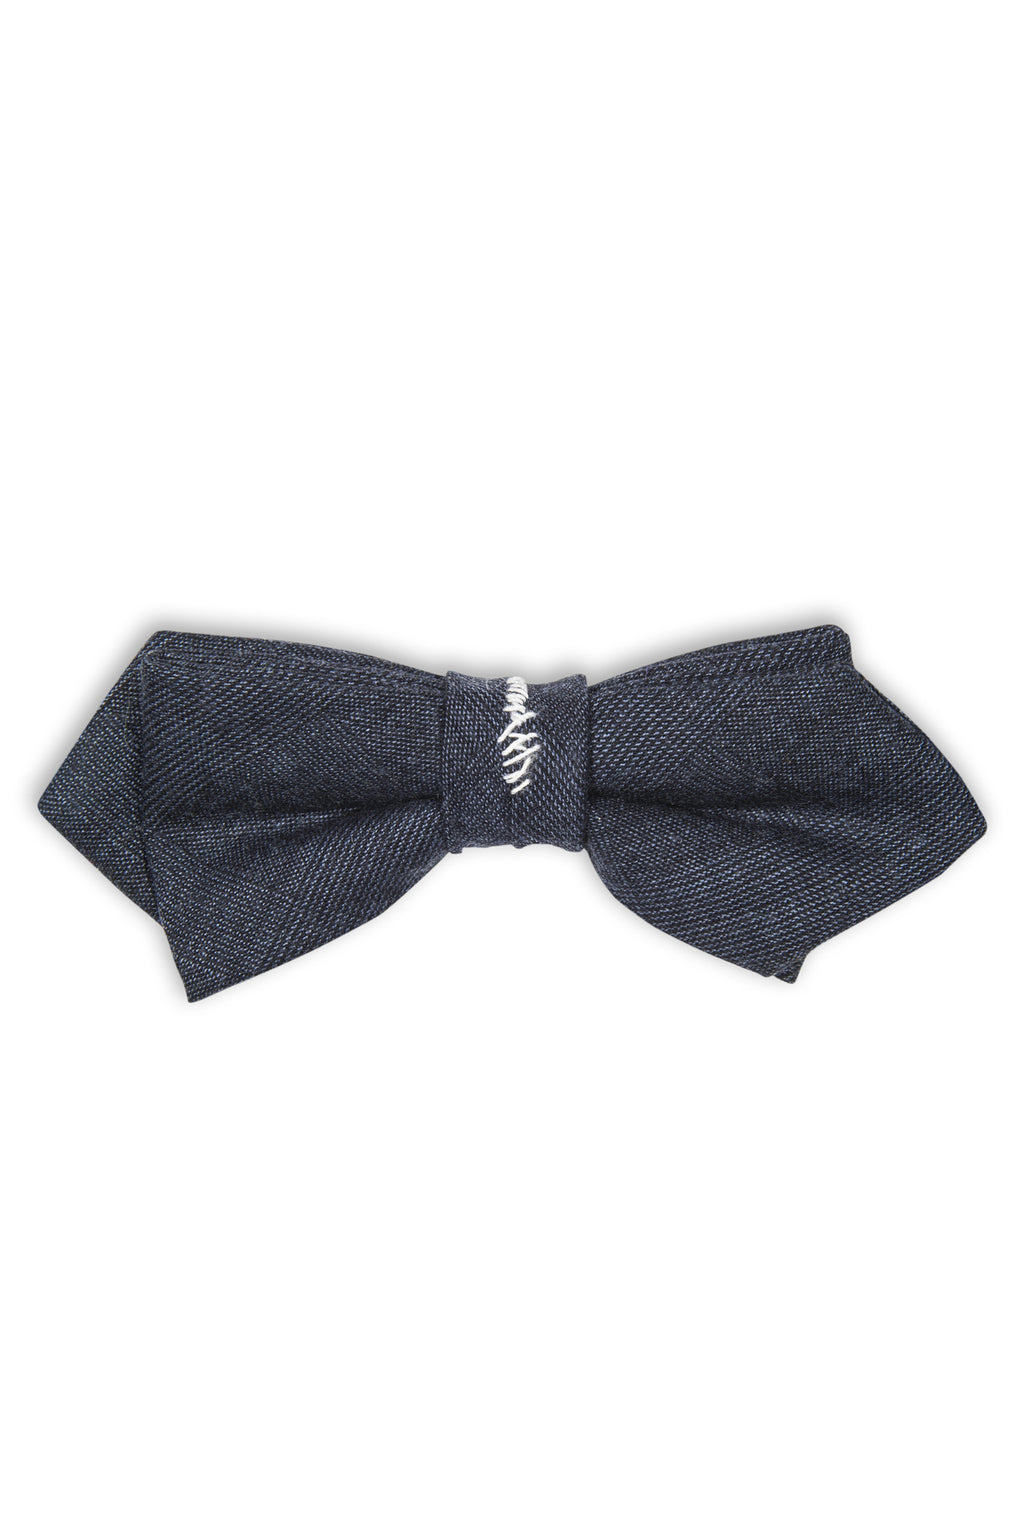 Noeud papillon avec fil blanc -Handmade blue bow tie with white threads